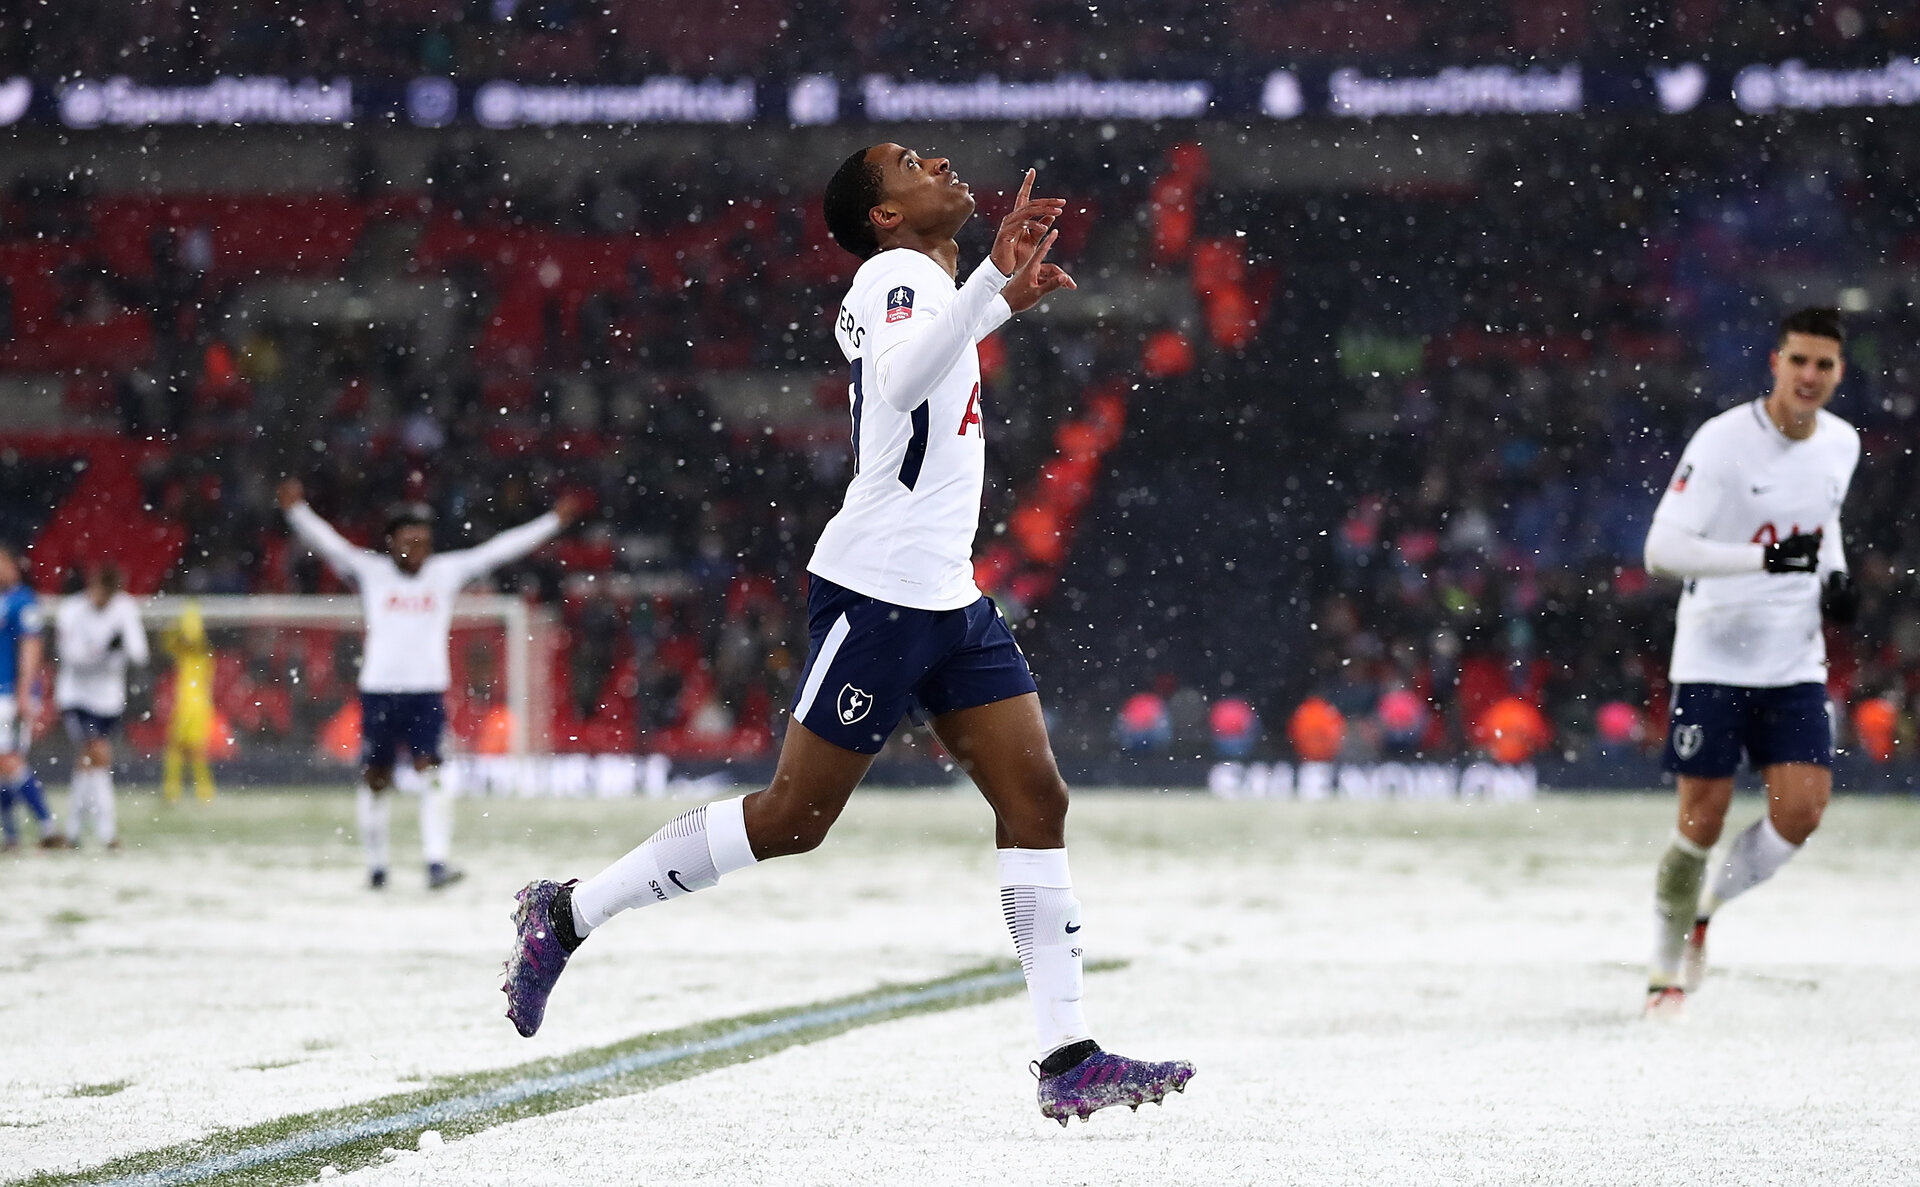 LONDON, ENGLAND - FEBRUARY 28:  Kyle Walker-Peters of Tottenham celebrates after scoring his team's sixth goal during The Emirates FA Cup Fifth Round Replay match between Tottenham Hotspur and Rochdale on February 28, 2018 in London, United Kingdom.  (Photo by Catherine Ivill/Getty Images)